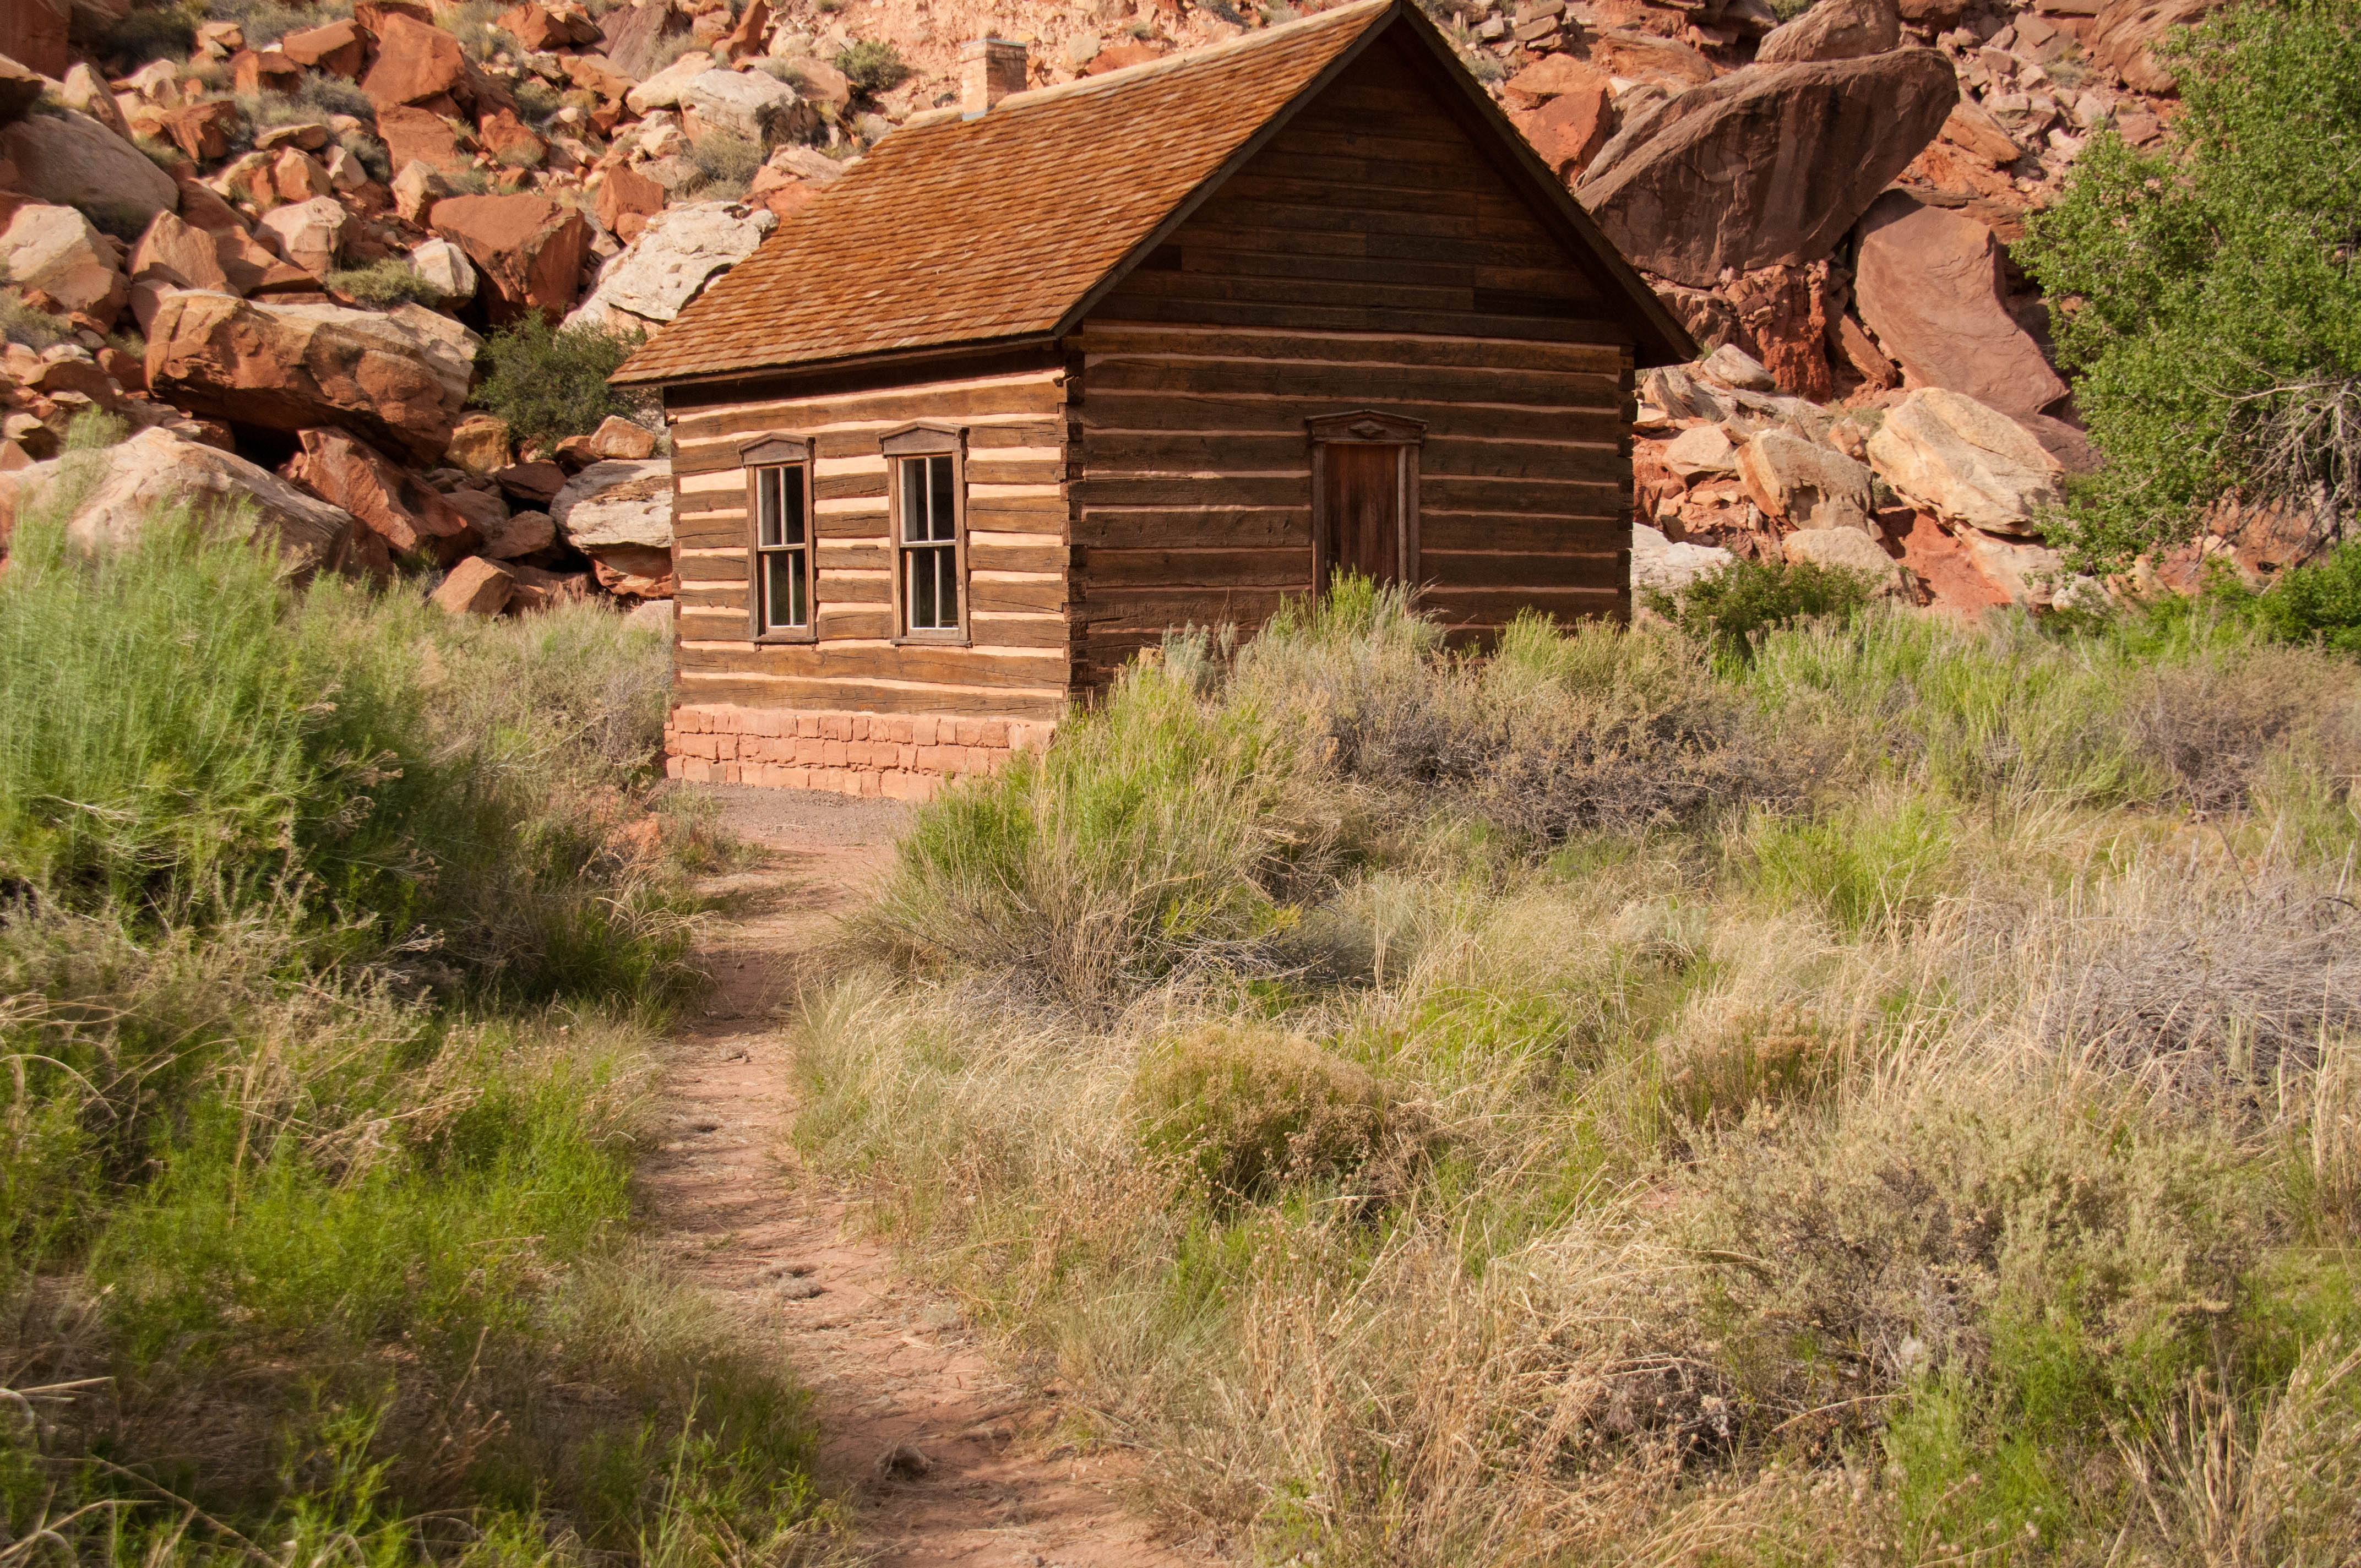 The Mormon school house, Fruita, Capitol Reef National Park, Utah, June 2016 | Photo by Jim Lillywhite, St. George News